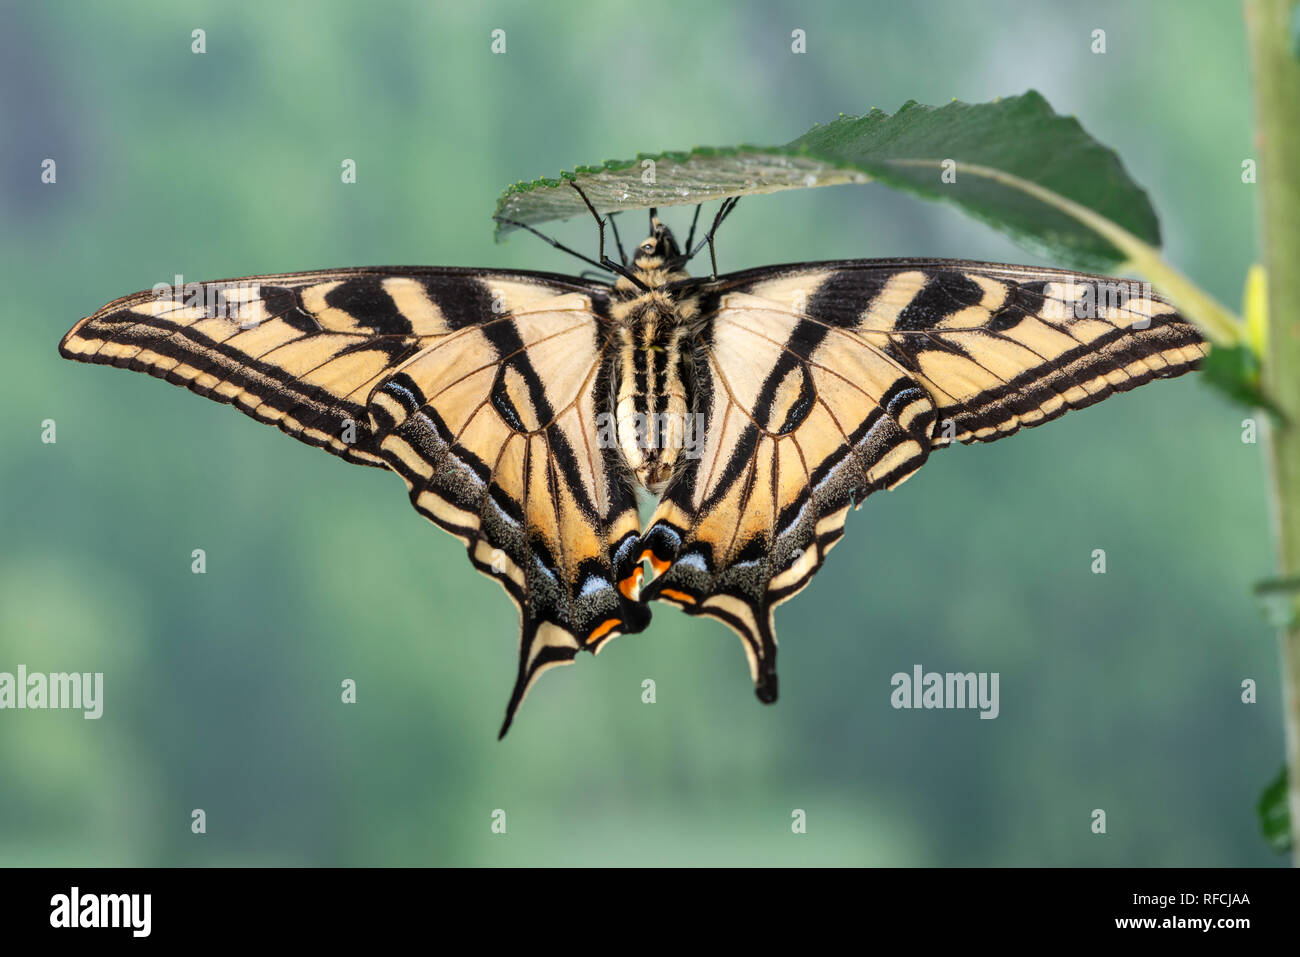 Tiger swallowtail butterfly Papilionidae hanging from a willow leaf - under side view - Stock Image